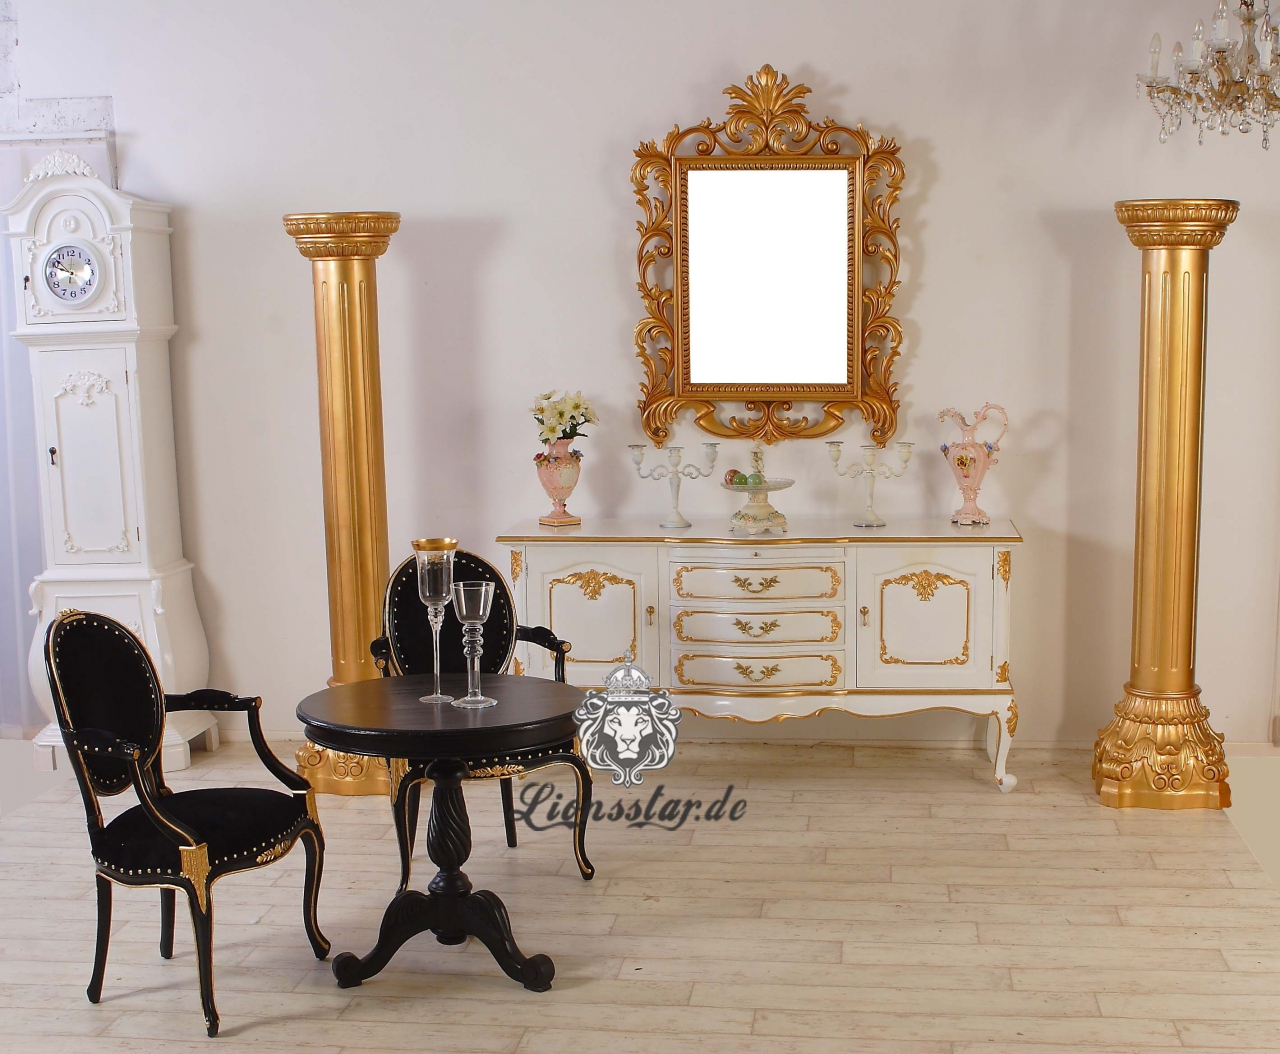 barock kommode wei gold lionsstar gmbh. Black Bedroom Furniture Sets. Home Design Ideas